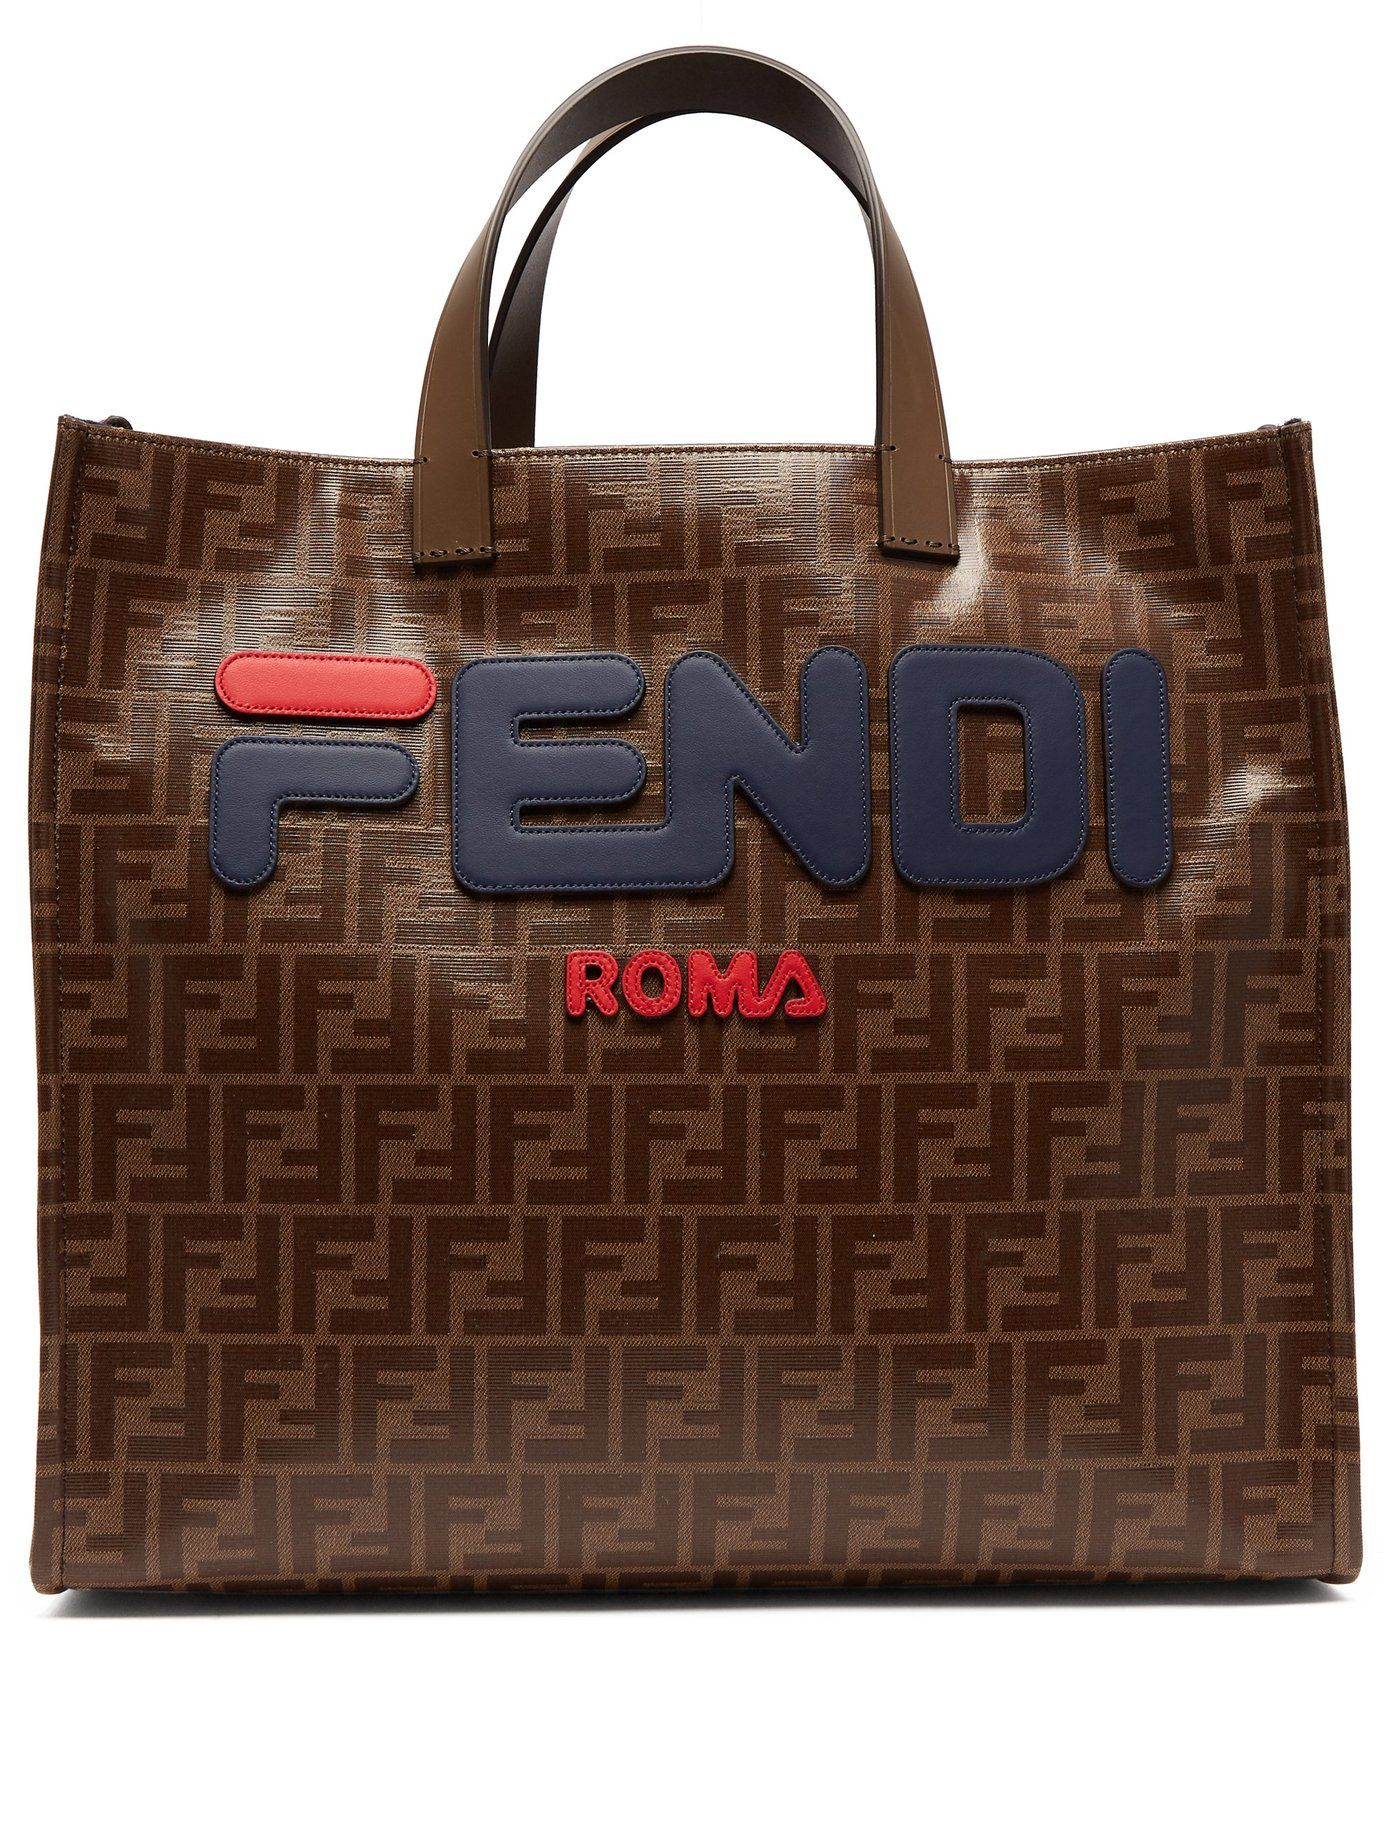 shop-fendi-mania-logo-applique-tote-bag